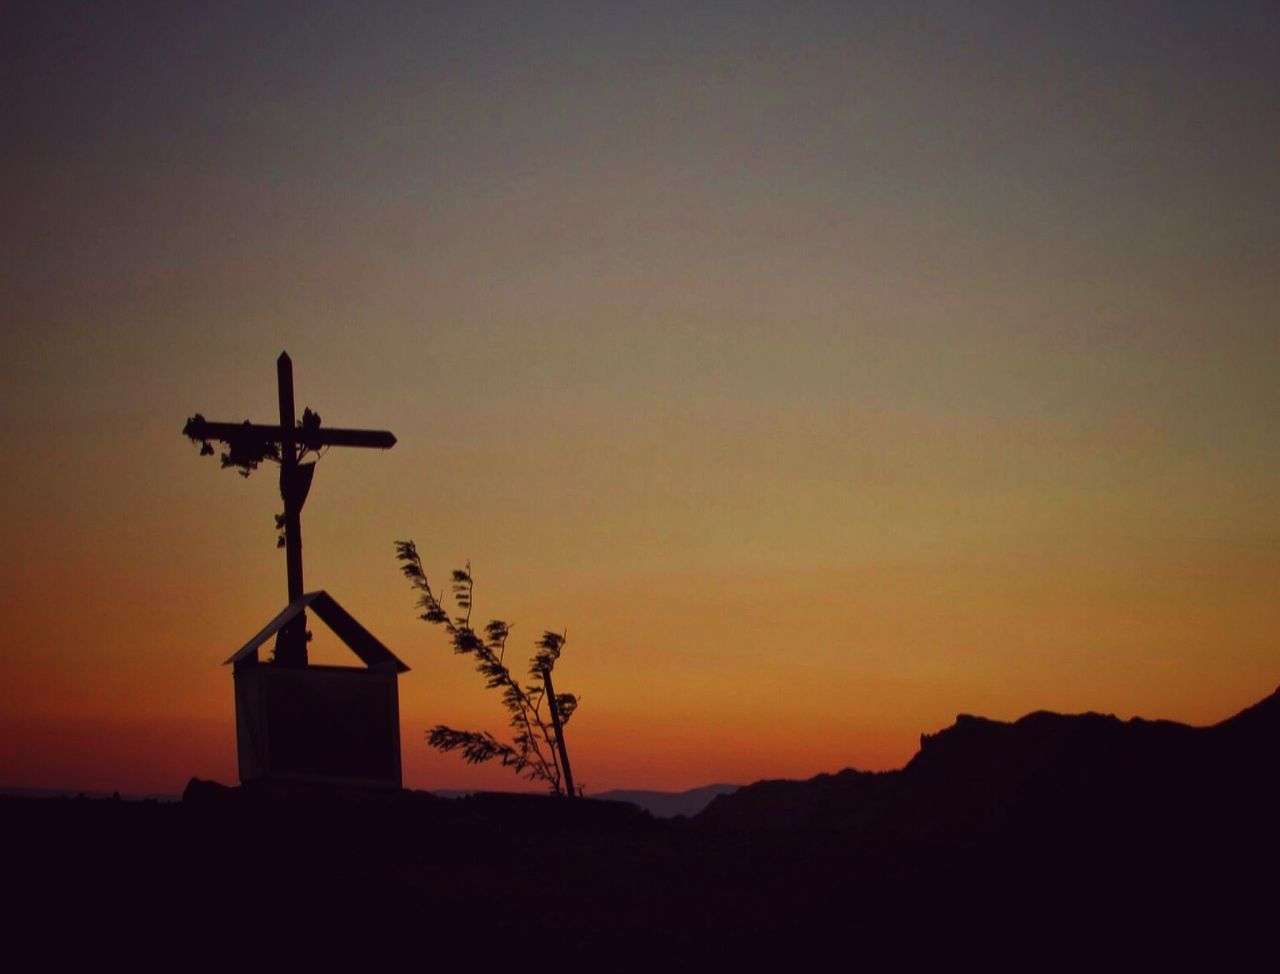 sunset, silhouette, no people, sky, nature, outdoors, wind power, architecture, traditional windmill, beauty in nature, wind turbine, windmill, day